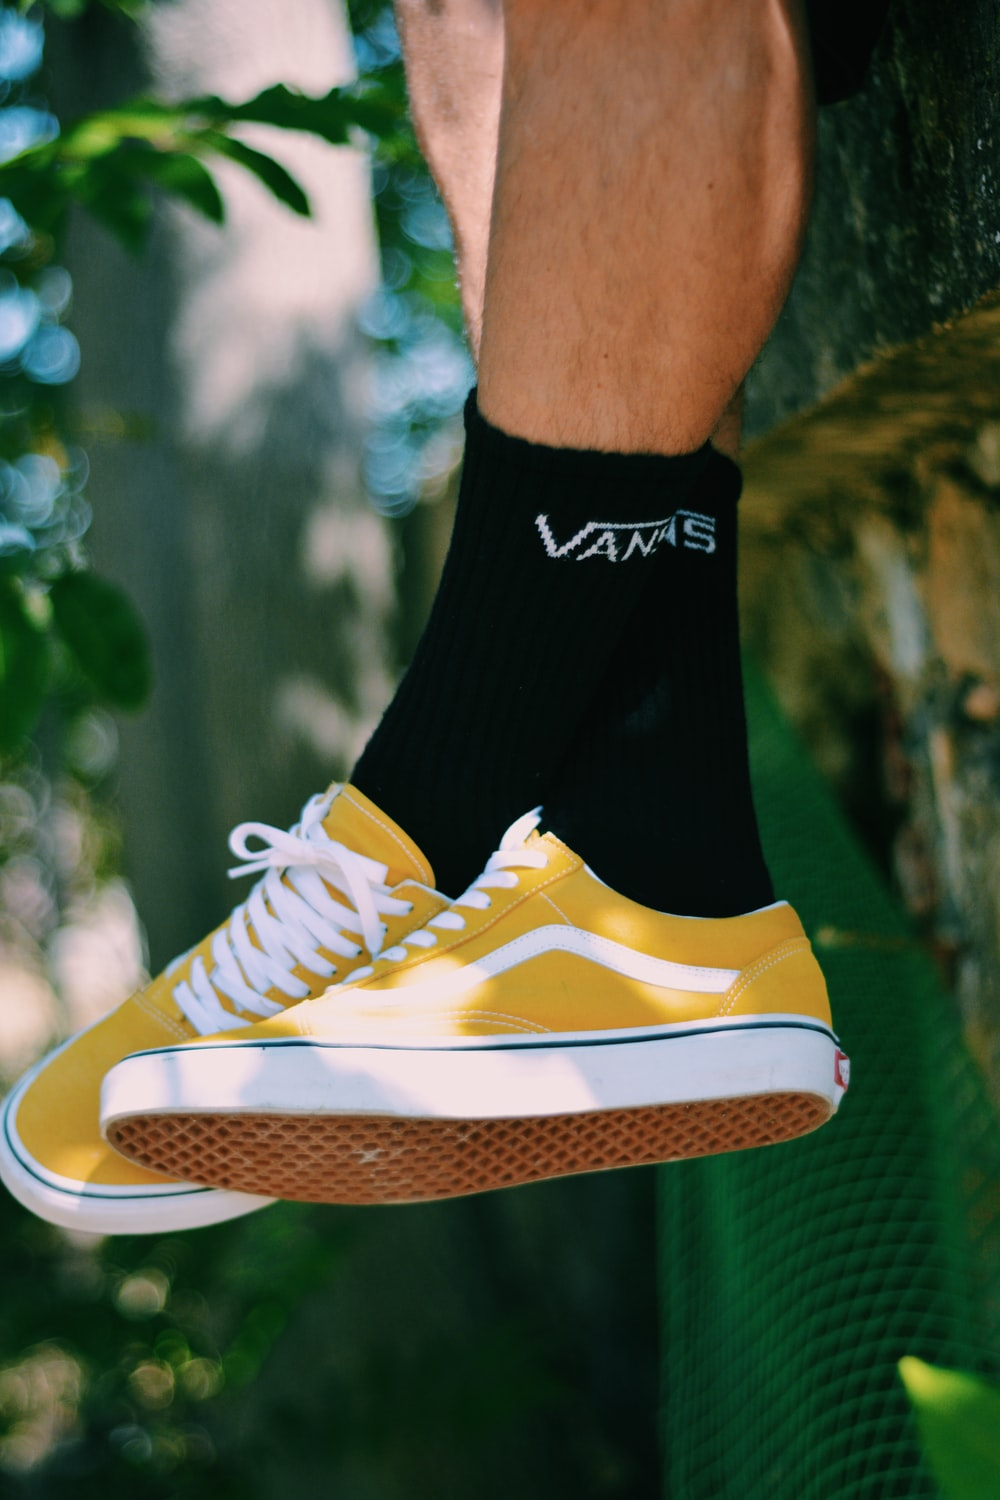 pair of yellow-and-white Vans low-top shoes